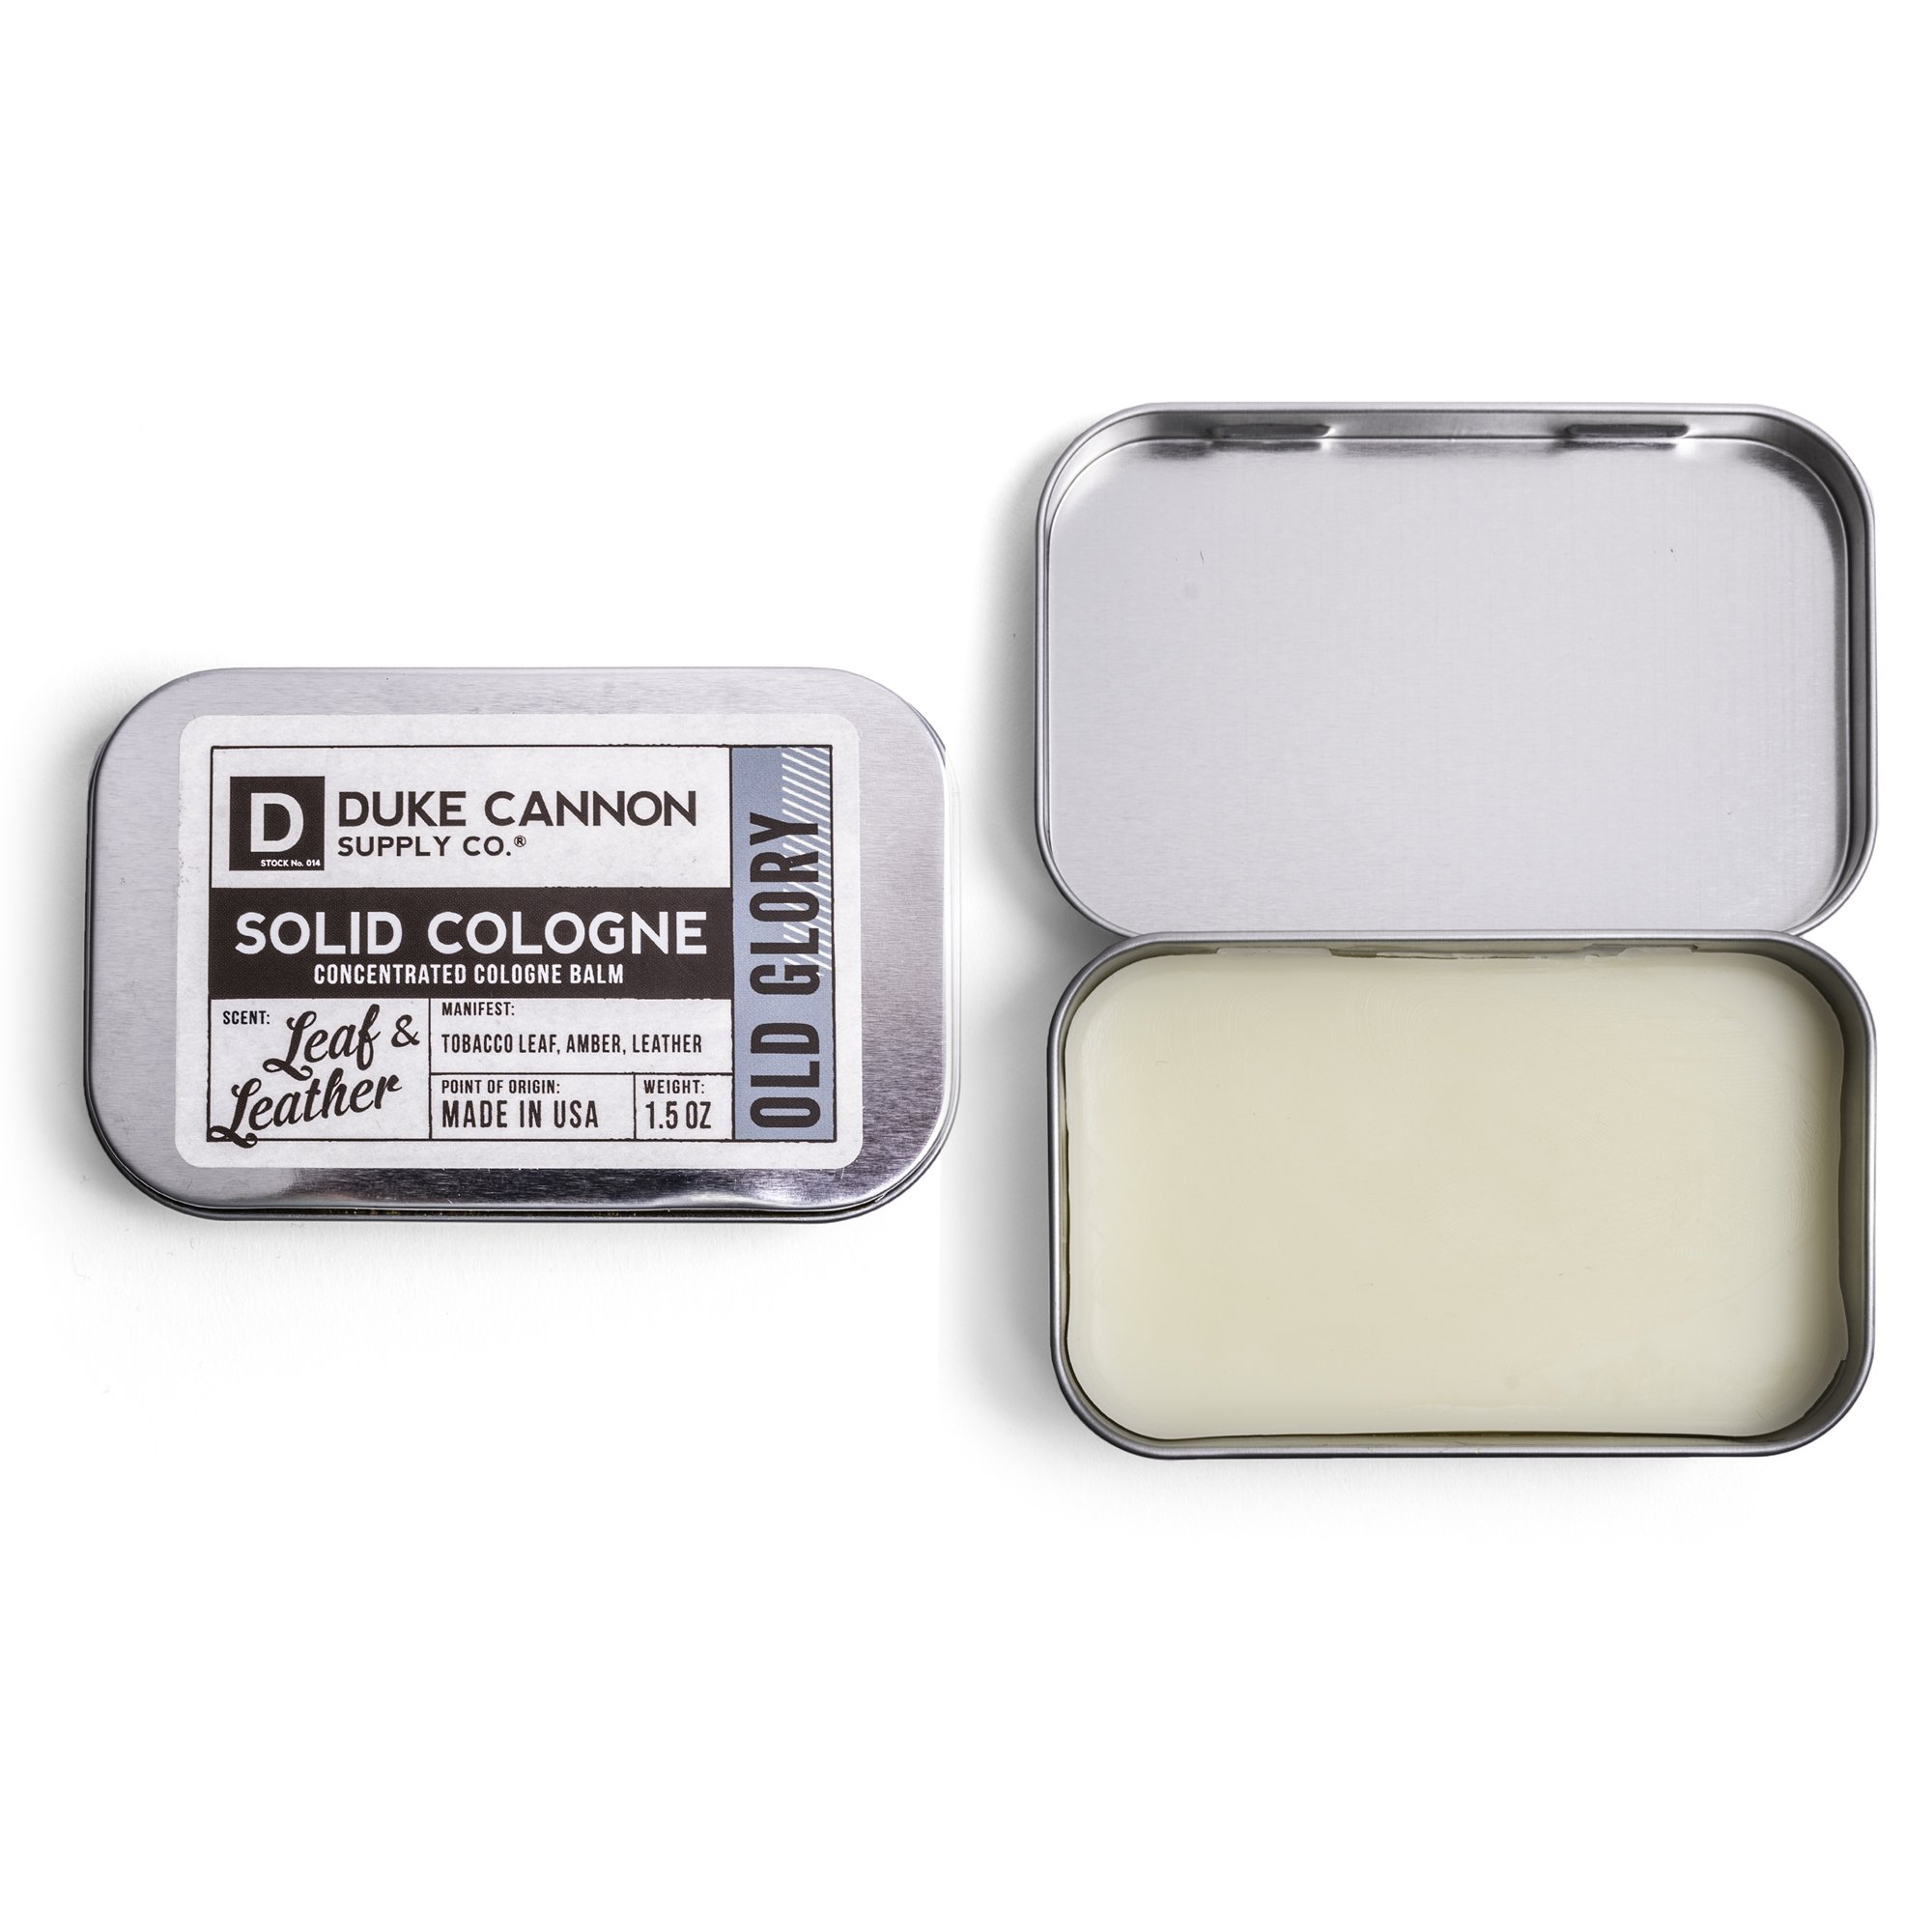 Solid Cologne-Old Glory